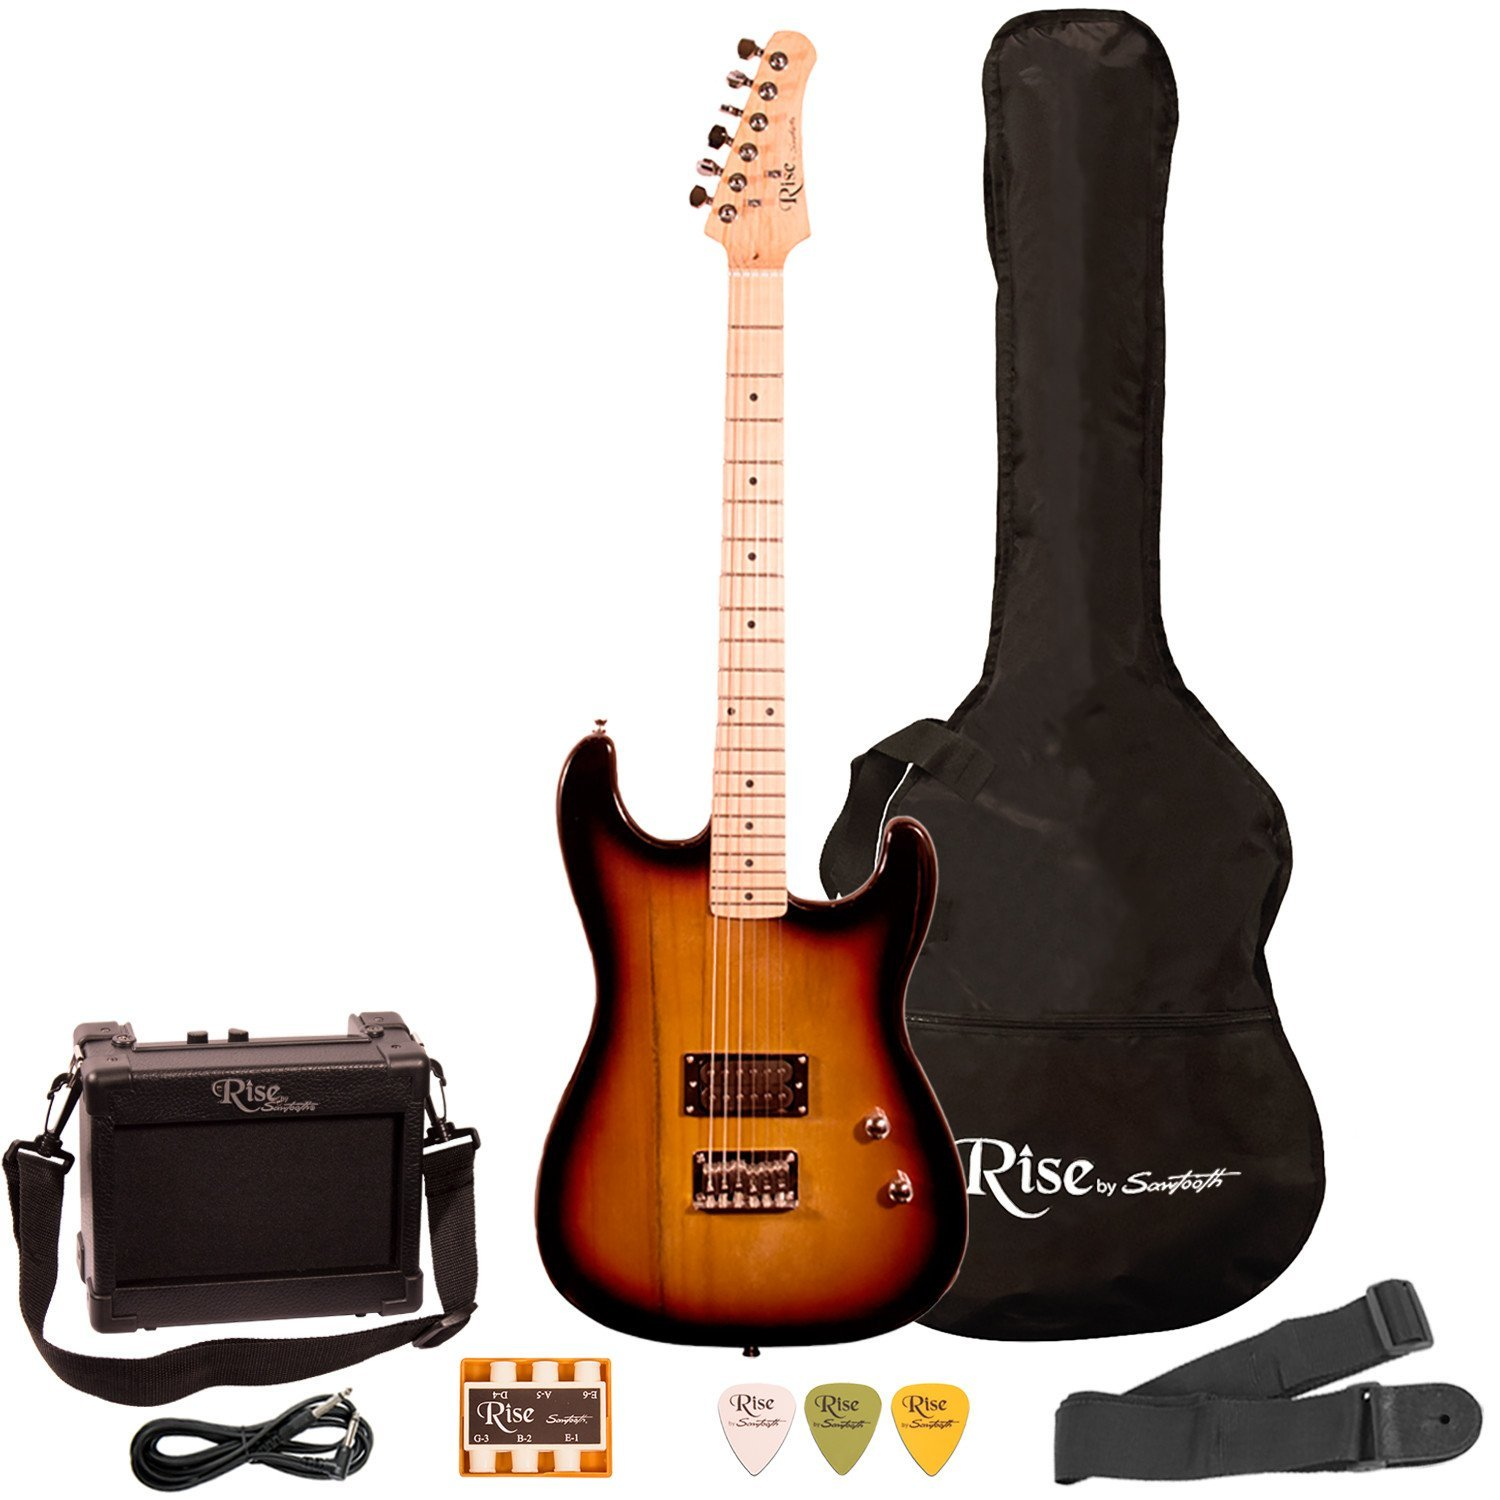 Rise by Sawtooth Right-Handed 3/4 Size Beginner's Electric Guitar with Gig Bag & Accessories, Sunburst